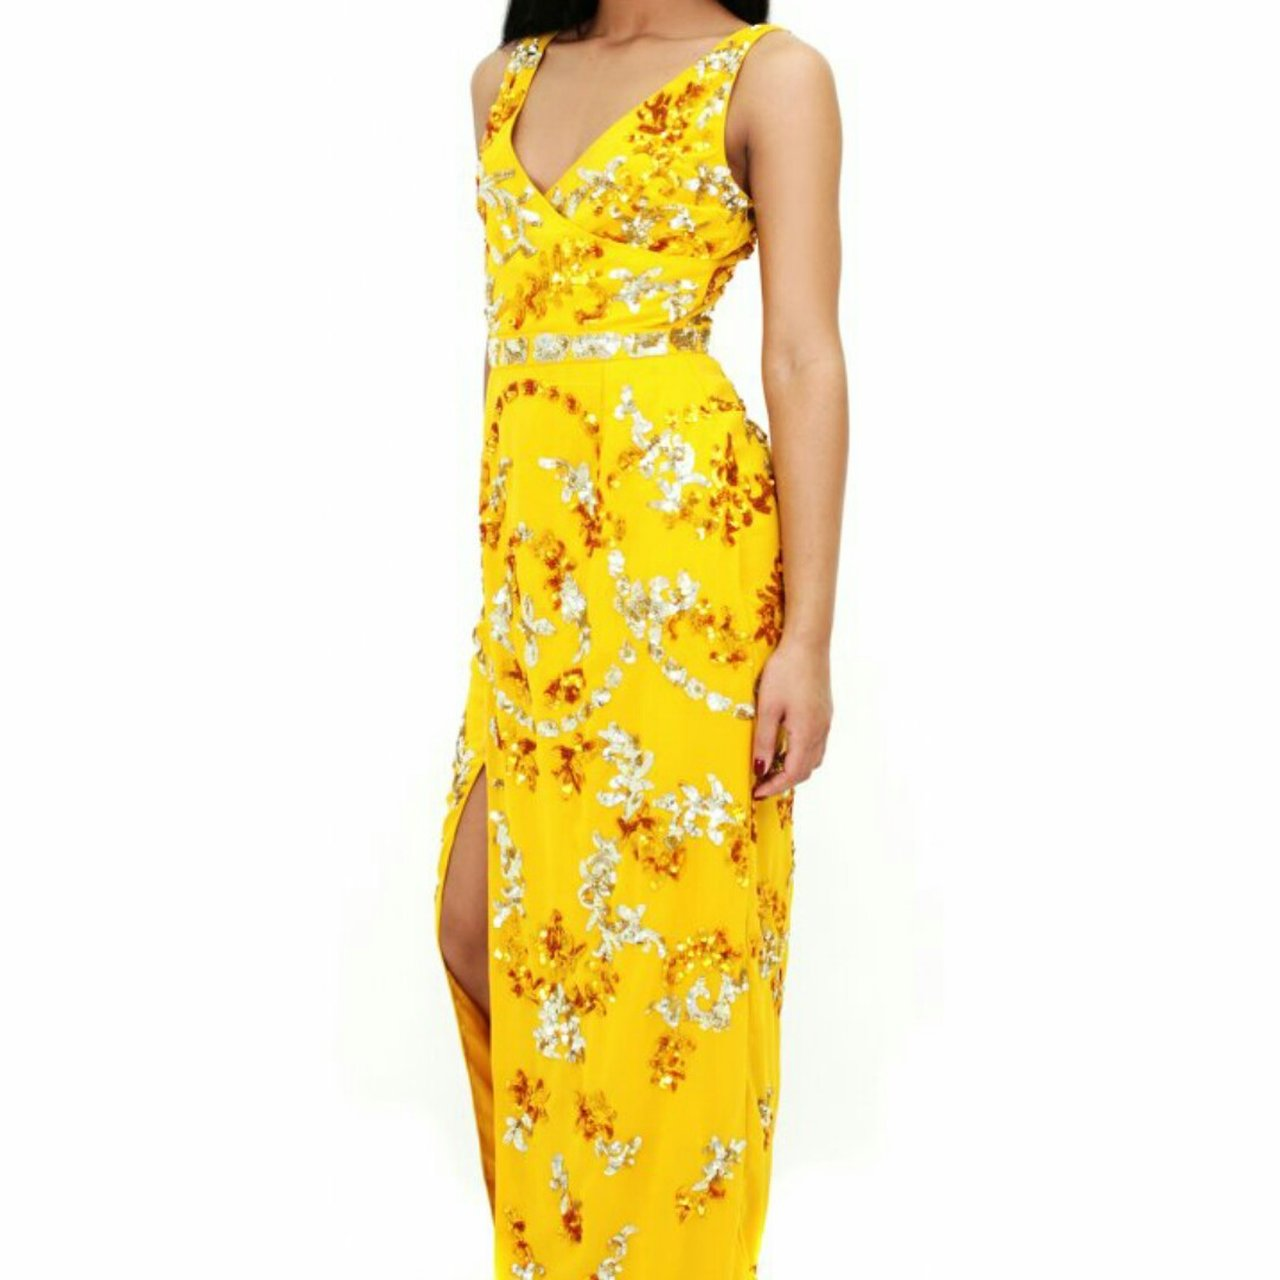 b799a739b94 Virgo Boutique Maxi Dresses – DACC